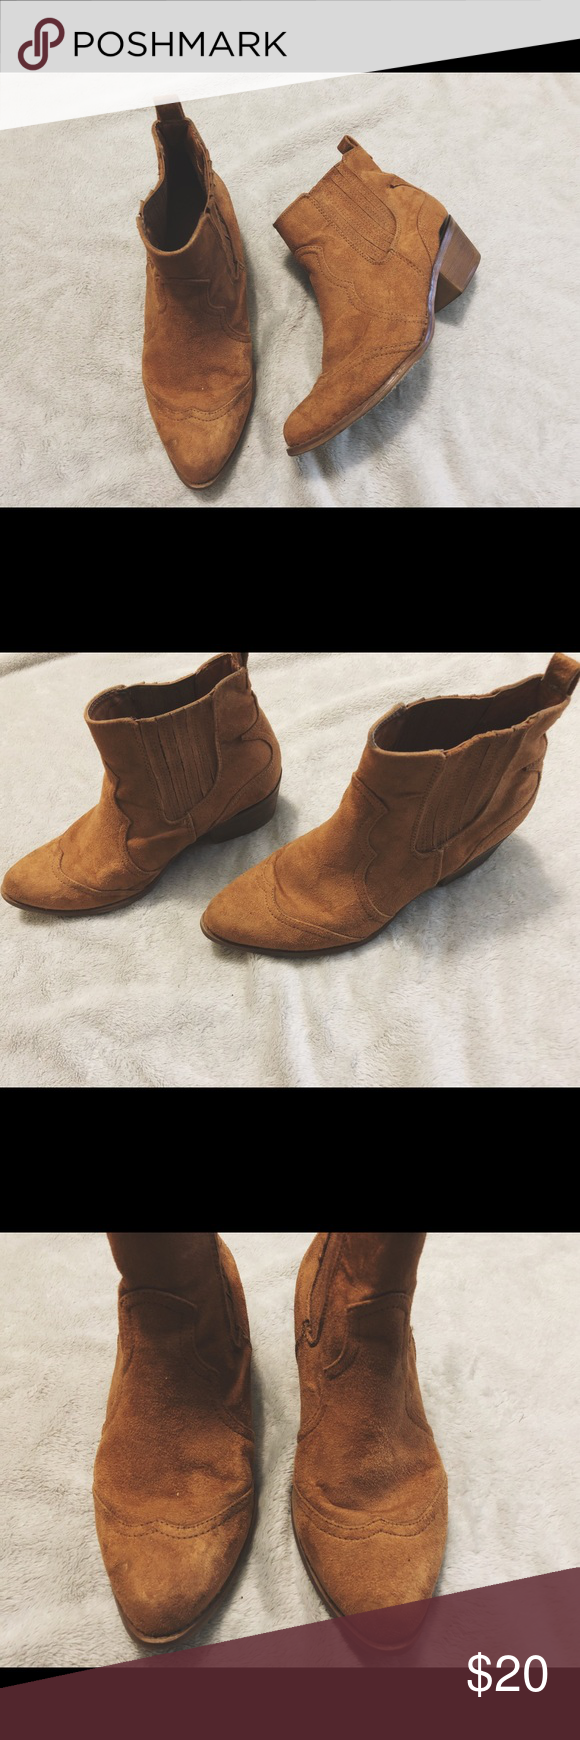 Faux suede ankle boots Super comfortable and cute, faux suede ankle boots. Look so cute paired with skinny jeans or a cute wrap dress! Merona Shoes Ankle Boots & Booties #skinnyjeansandankleboots Faux suede ankle boots Super comfortable and cute, faux suede ankle boots. Look so cute paired with skinny jeans or a cute wrap dress! Merona Shoes Ankle Boots & Booties #skinnyjeansandankleboots Faux suede ankle boots Super comfortable and cute, faux suede ankle boots. Look so cute paired with skinny j #skinnyjeansandankleboots